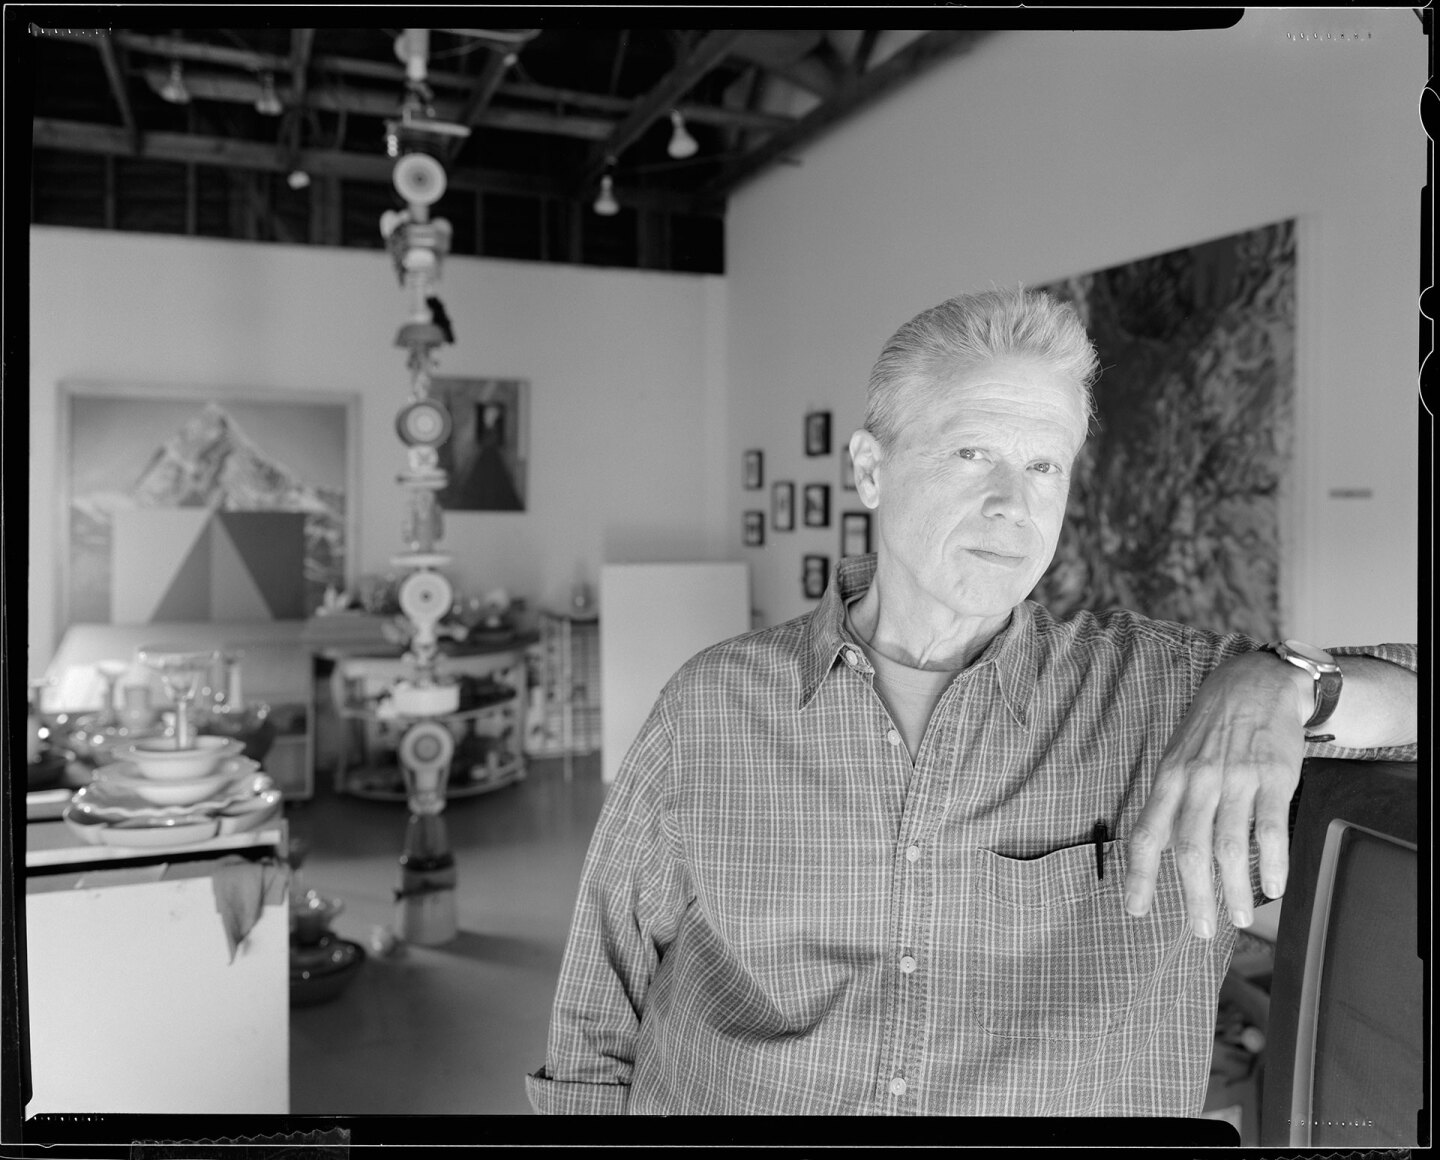 Los Angeles artist Don Suggs, by Paul O'Connor